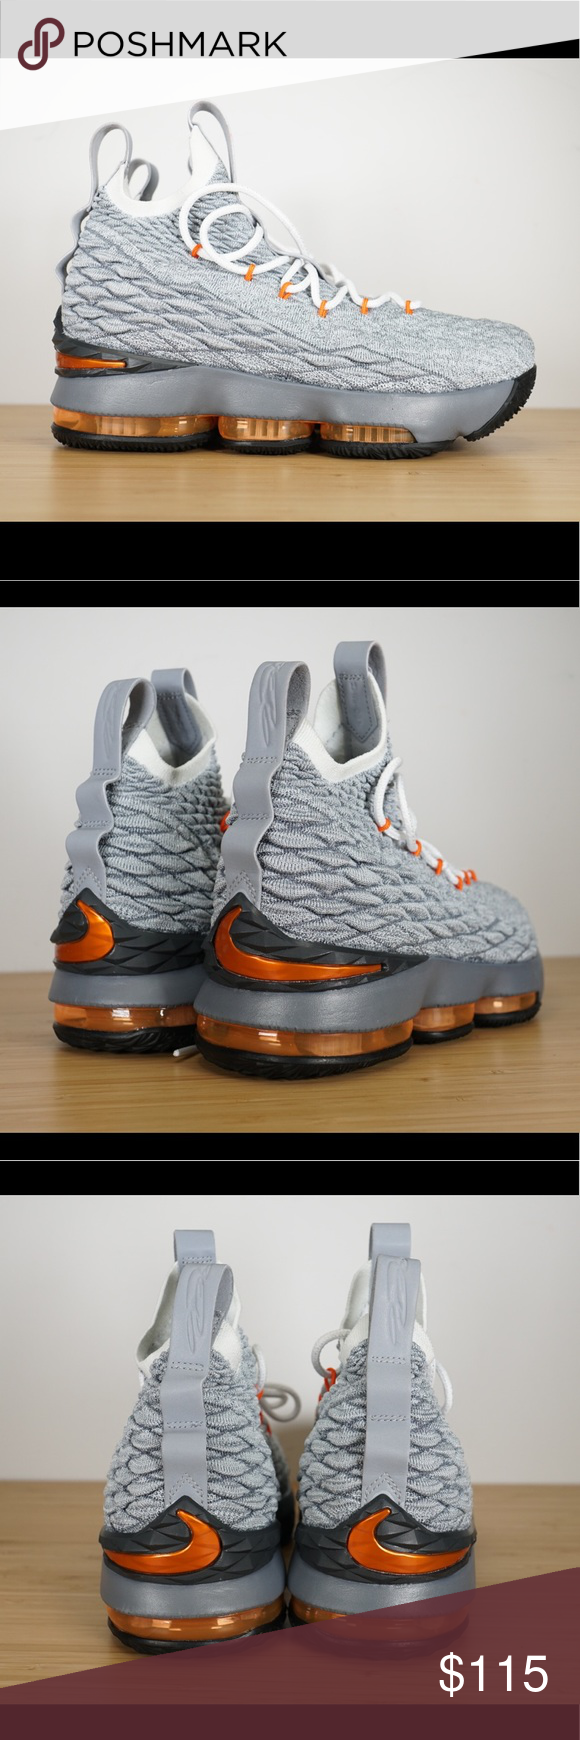 d490d48f54484 Nike Lebron XV 15 GS Basketball Shoes Gray Orange Nike Lebron XV 15 (GS)  Basketball Shoes Style  922811-080 Color  Grey Safety Orange Size 7Y Brand  New in ...